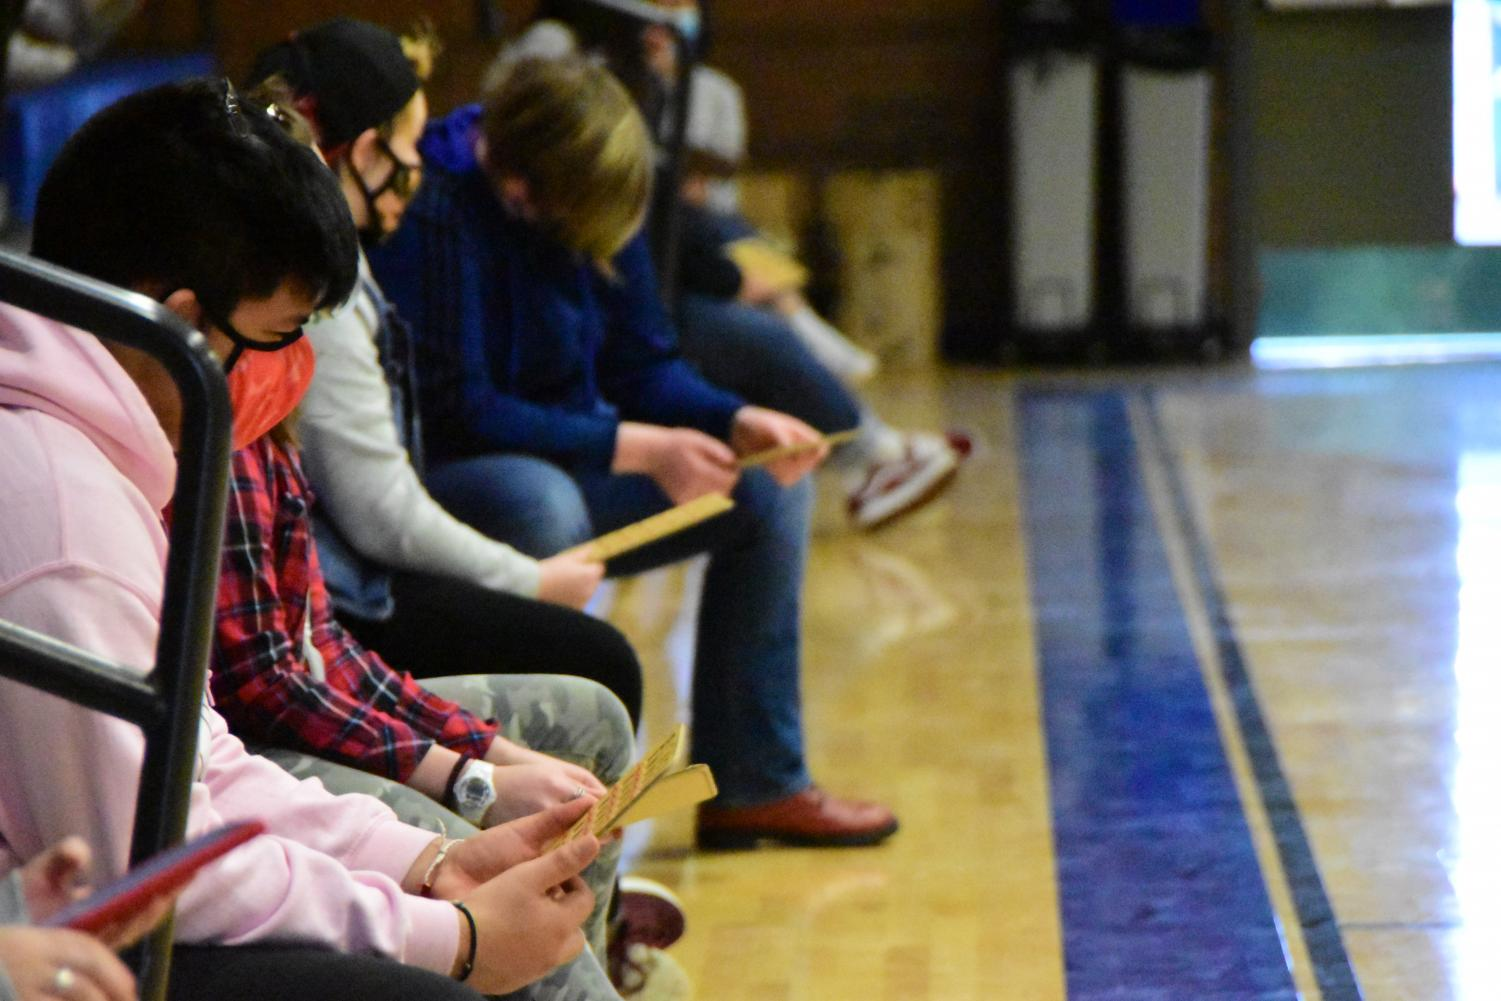 Sophomores+and+Juniors+Visit+Campus+for+Class+Connect+Day